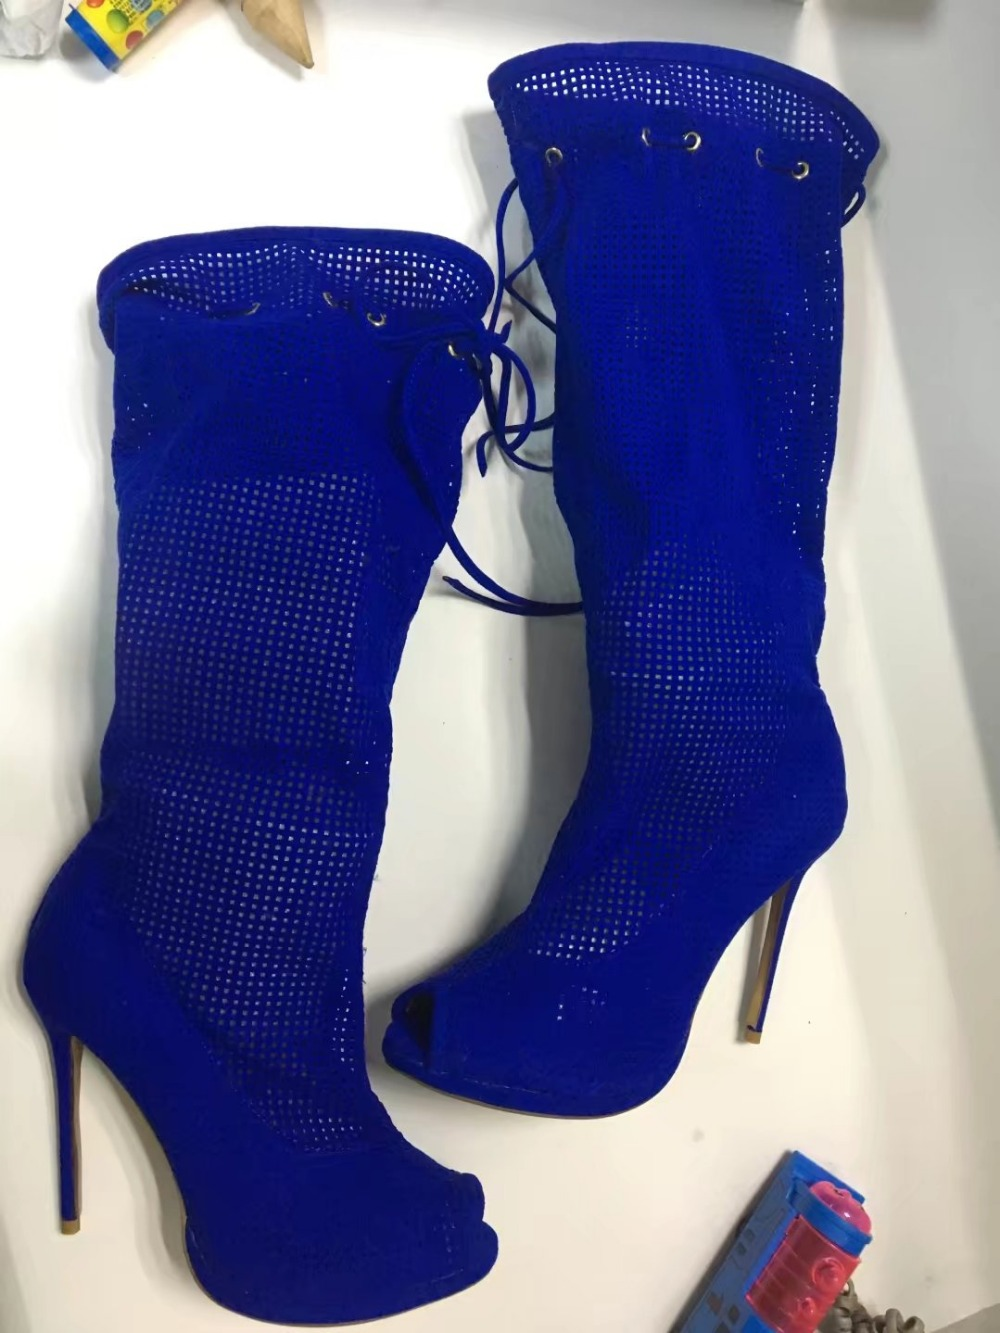 2017 summer women boots blue cut-outs high heels over the knee boots lace-up long boots sexy peep toe platform boots women